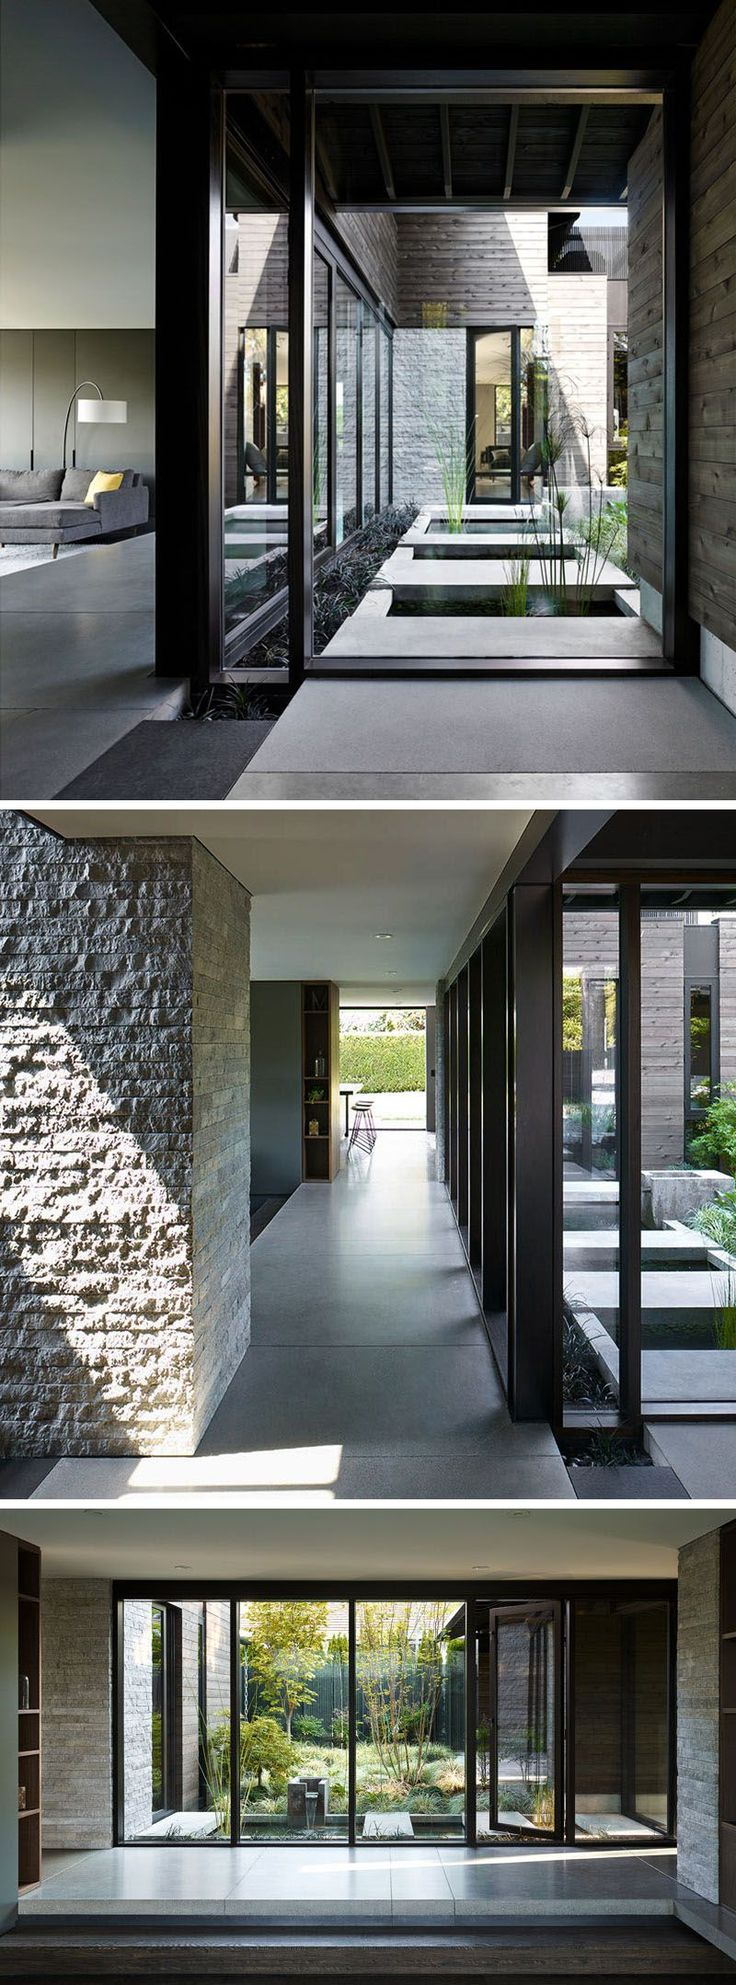 Stepping inside this renovated house, what was once a wall with three slim vertical windows, is now a large open window that provides views of the courtyard from inside the home. Around the corner and hidden in plain sight is a glass door that allows access to the courtyard. #Renovation #Windows #ModernHouse #Courtyard